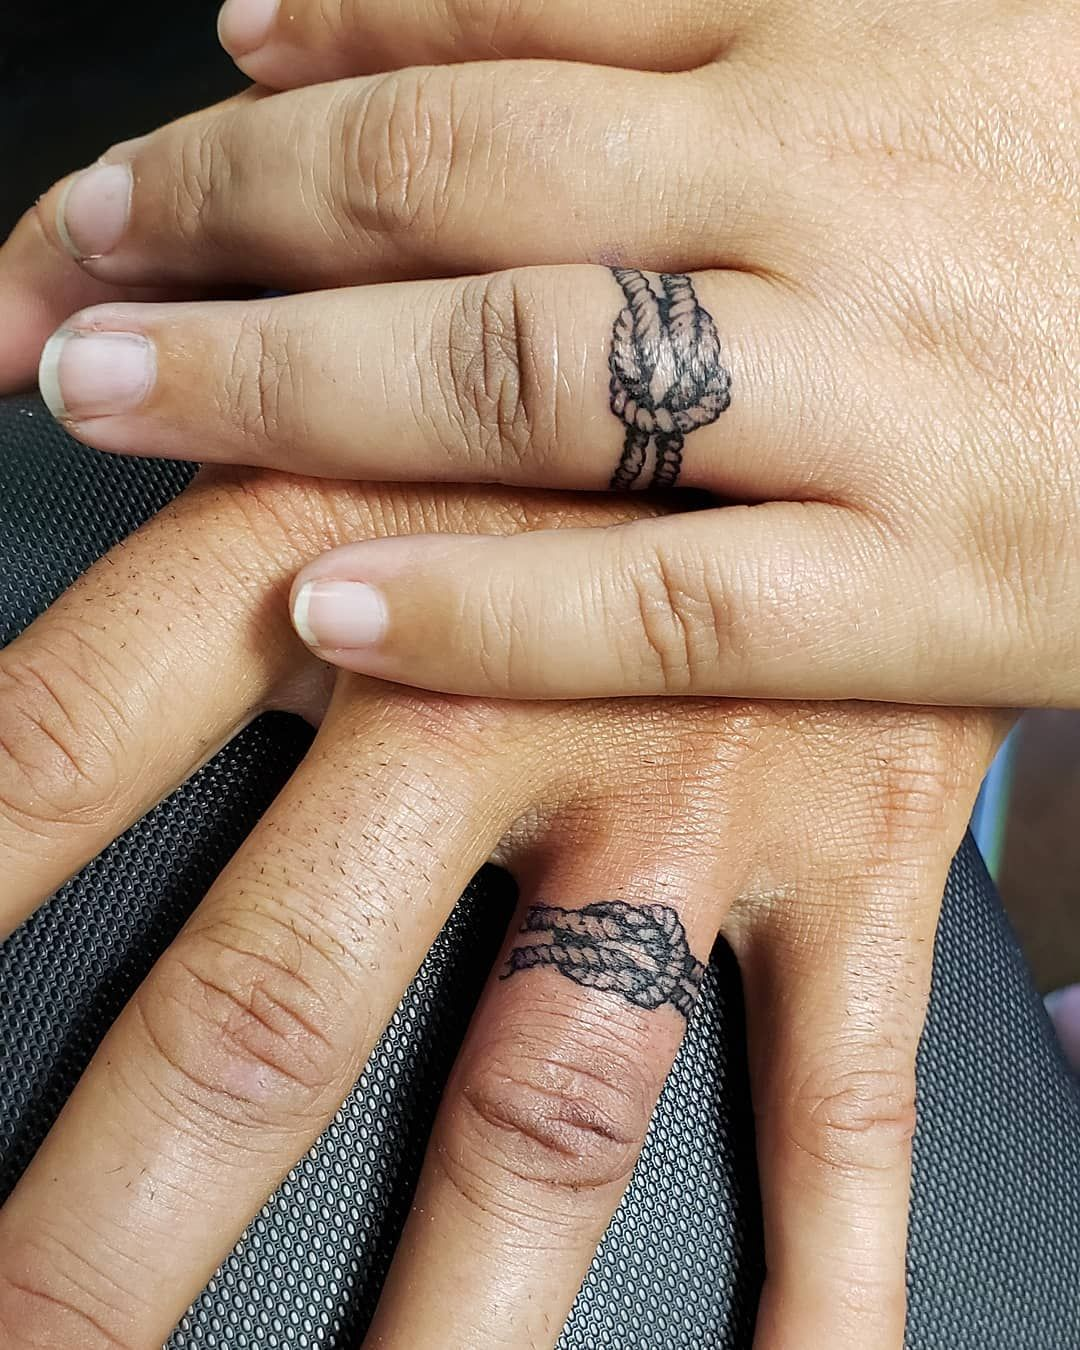 photo of a couples hands on top of each other showing off a wedding ring tattoo